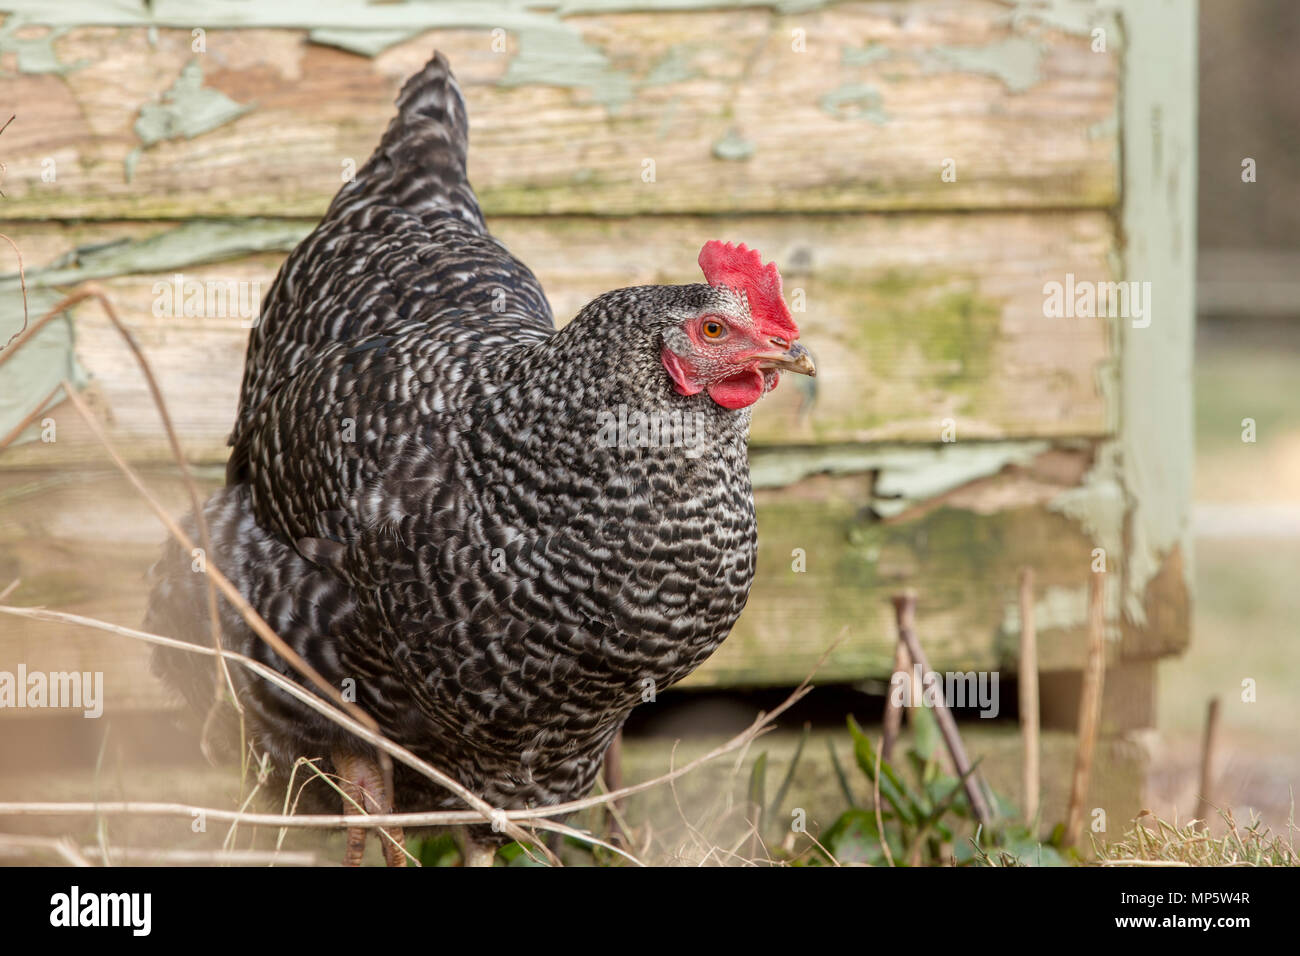 Free range mottled black and white hen. - Stock Image